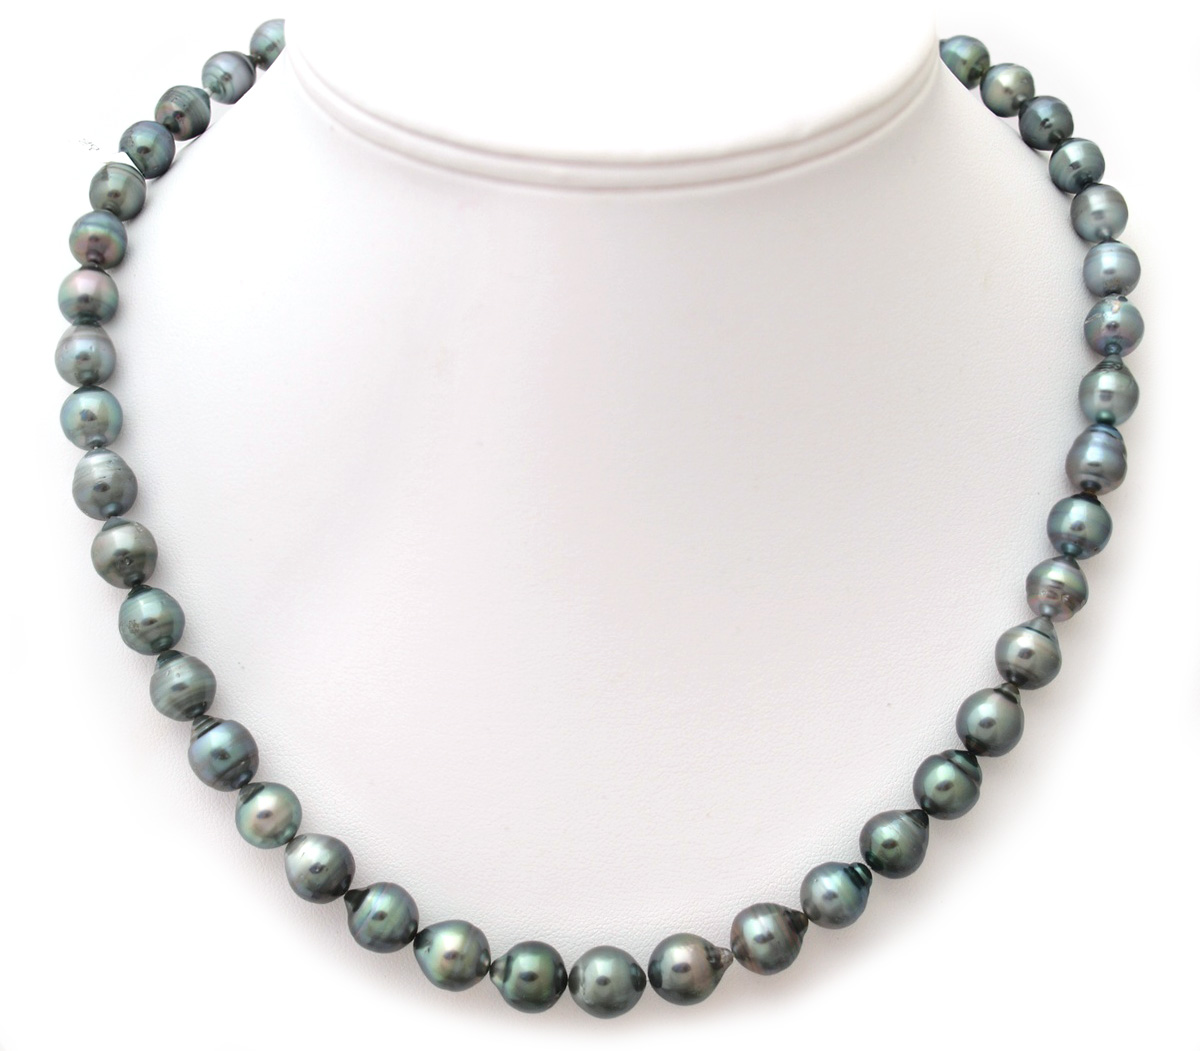 10mm Pearl Necklace 18 Inch